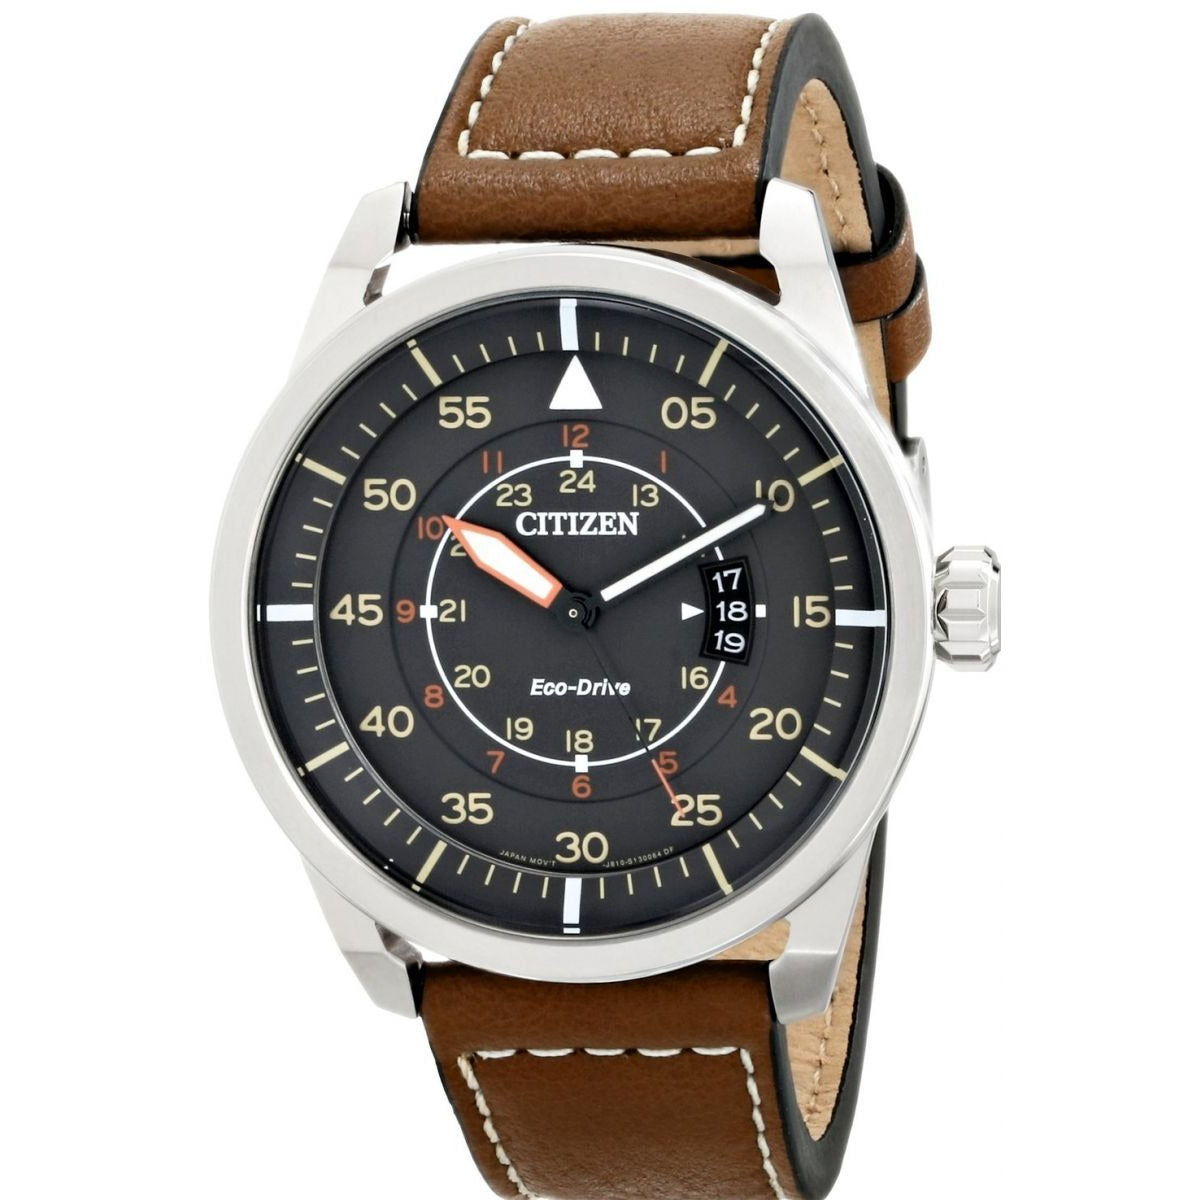 Citizen Avion AW1361-10H Analog Leather Band Watch for Men